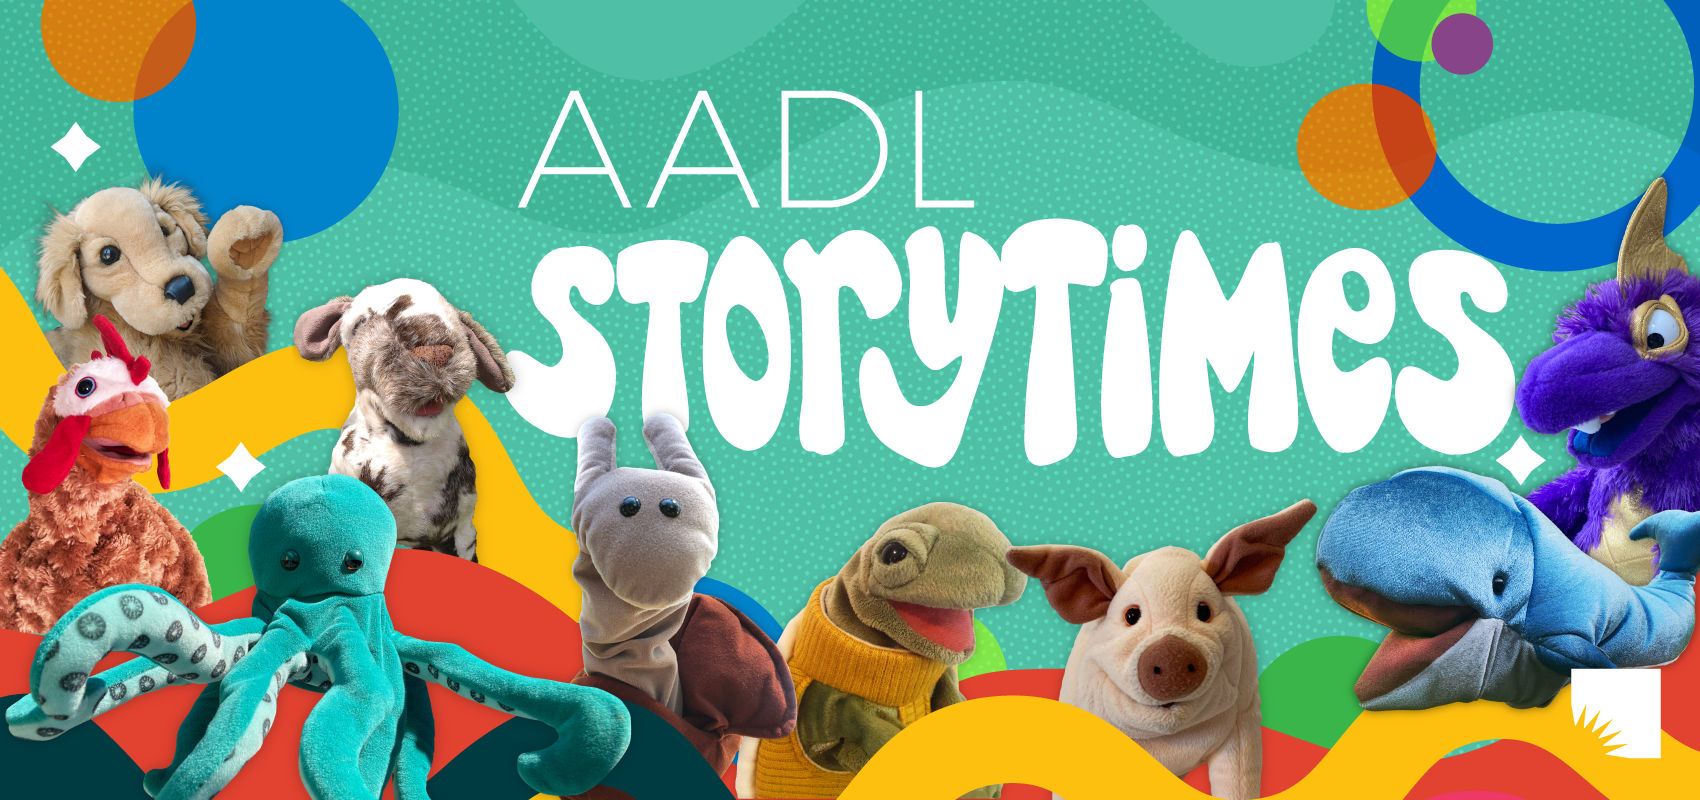 AADL storytimes poster